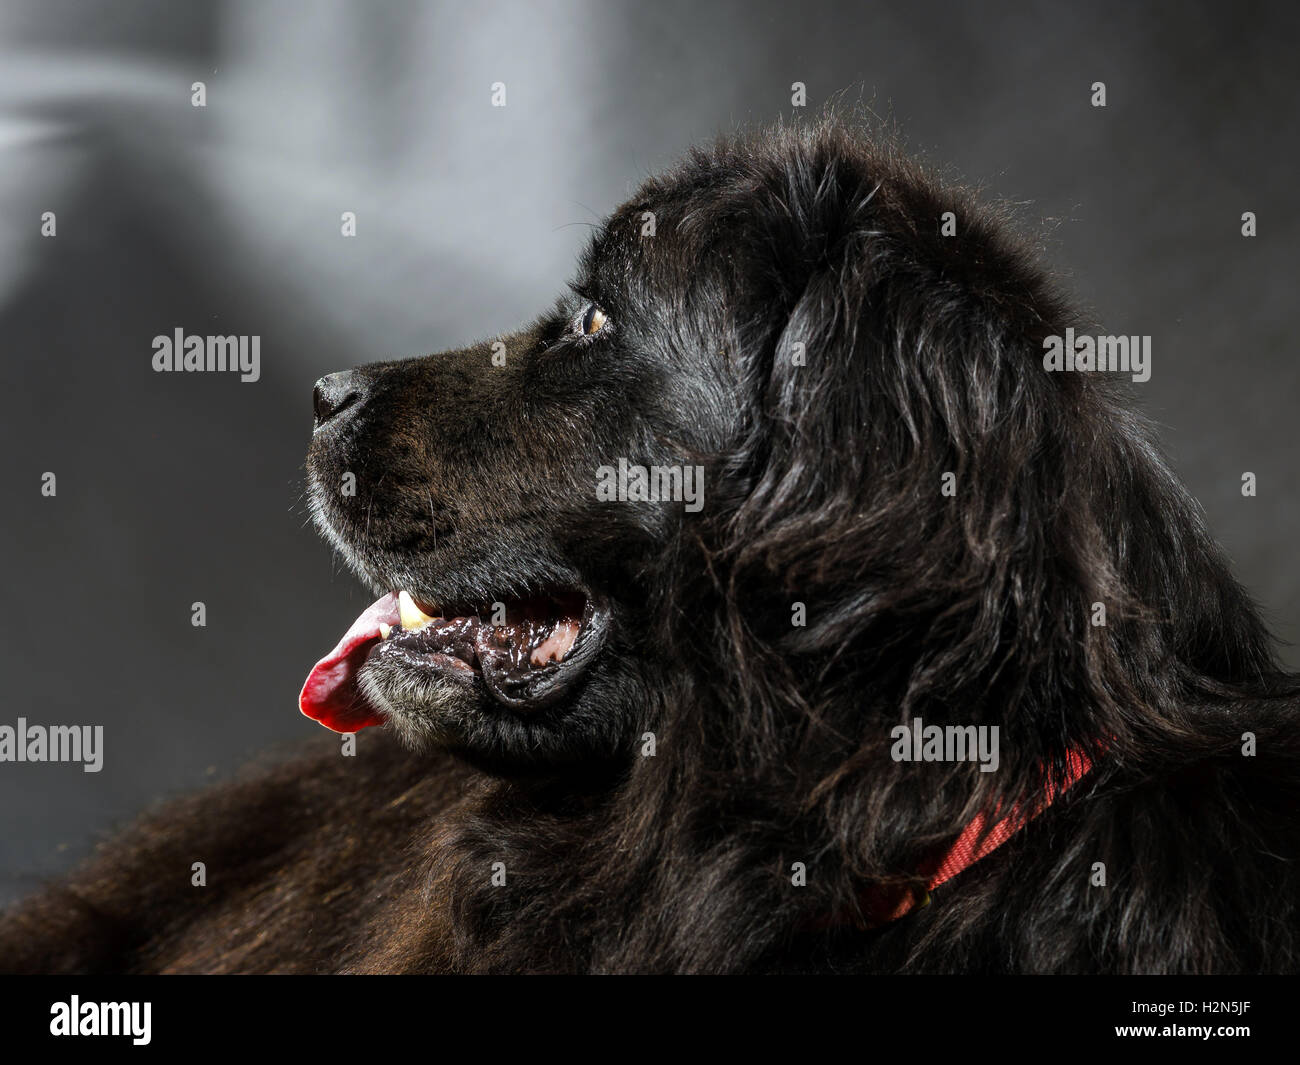 Portrait of big black water-dog, studio shooting, isolated on dark background - Stock Image